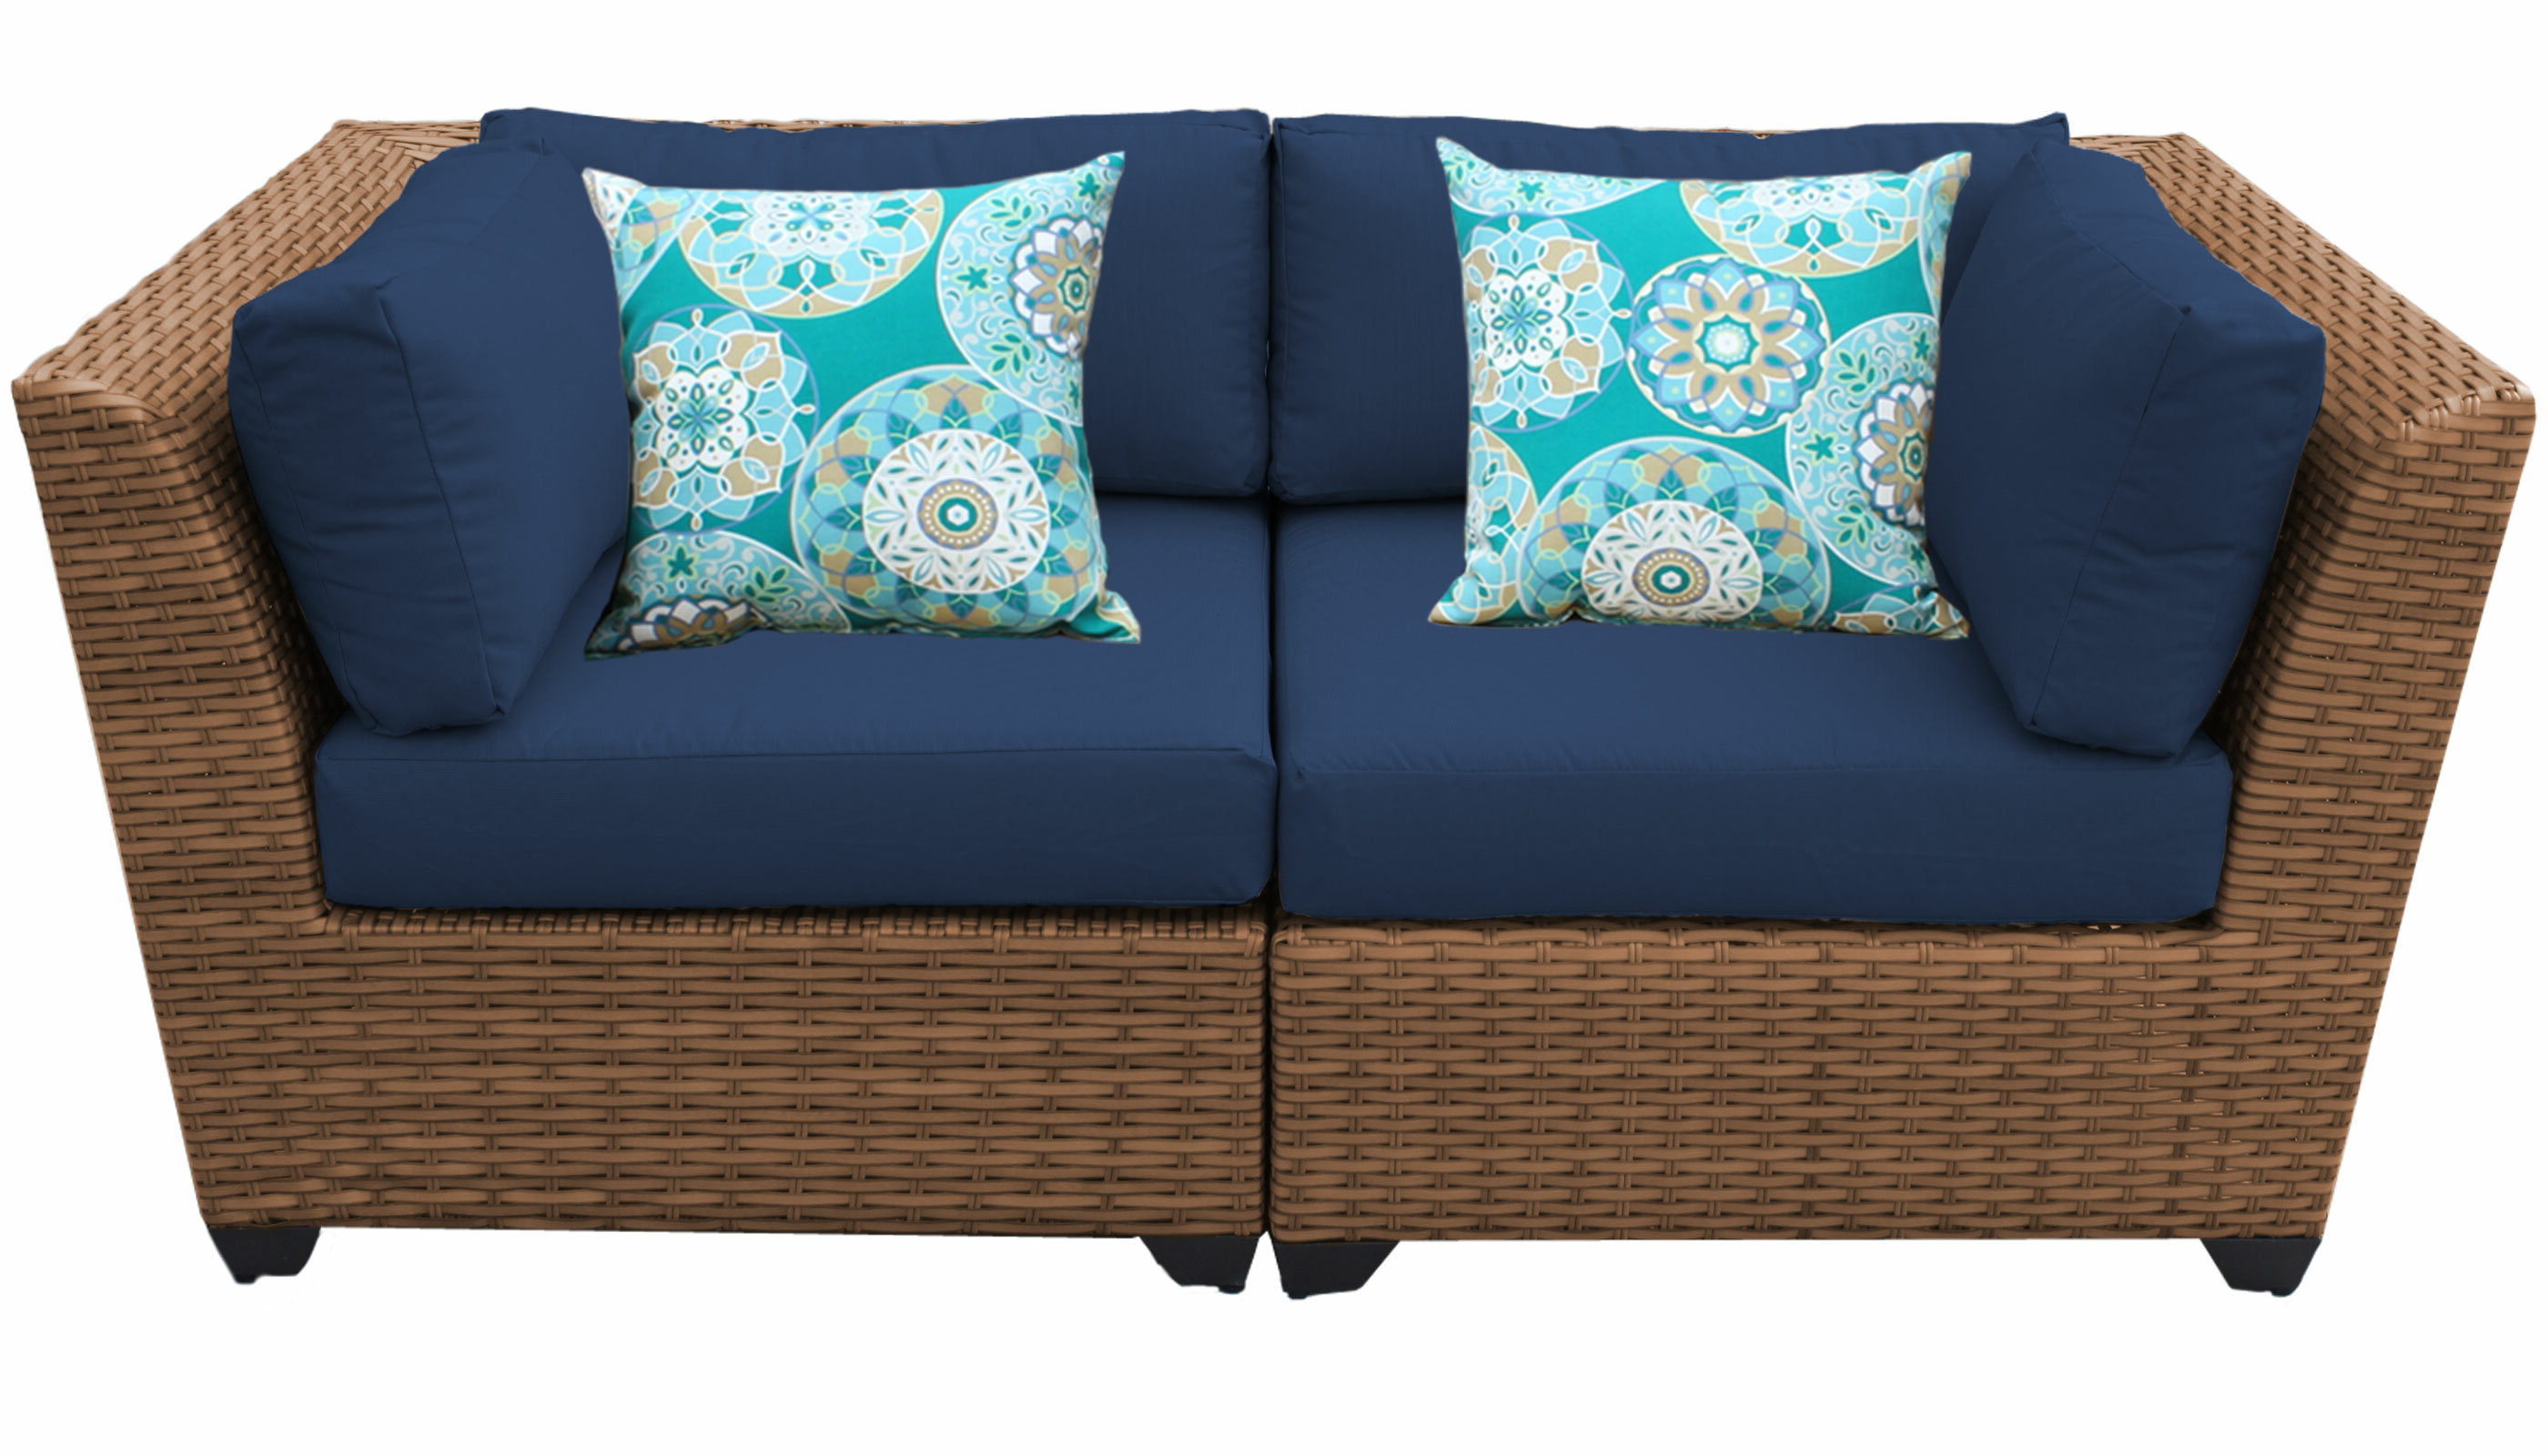 2019 Waterbury Loveseat With Cushions Inside Northridge Loveseats With Cushions (View 17 of 20)